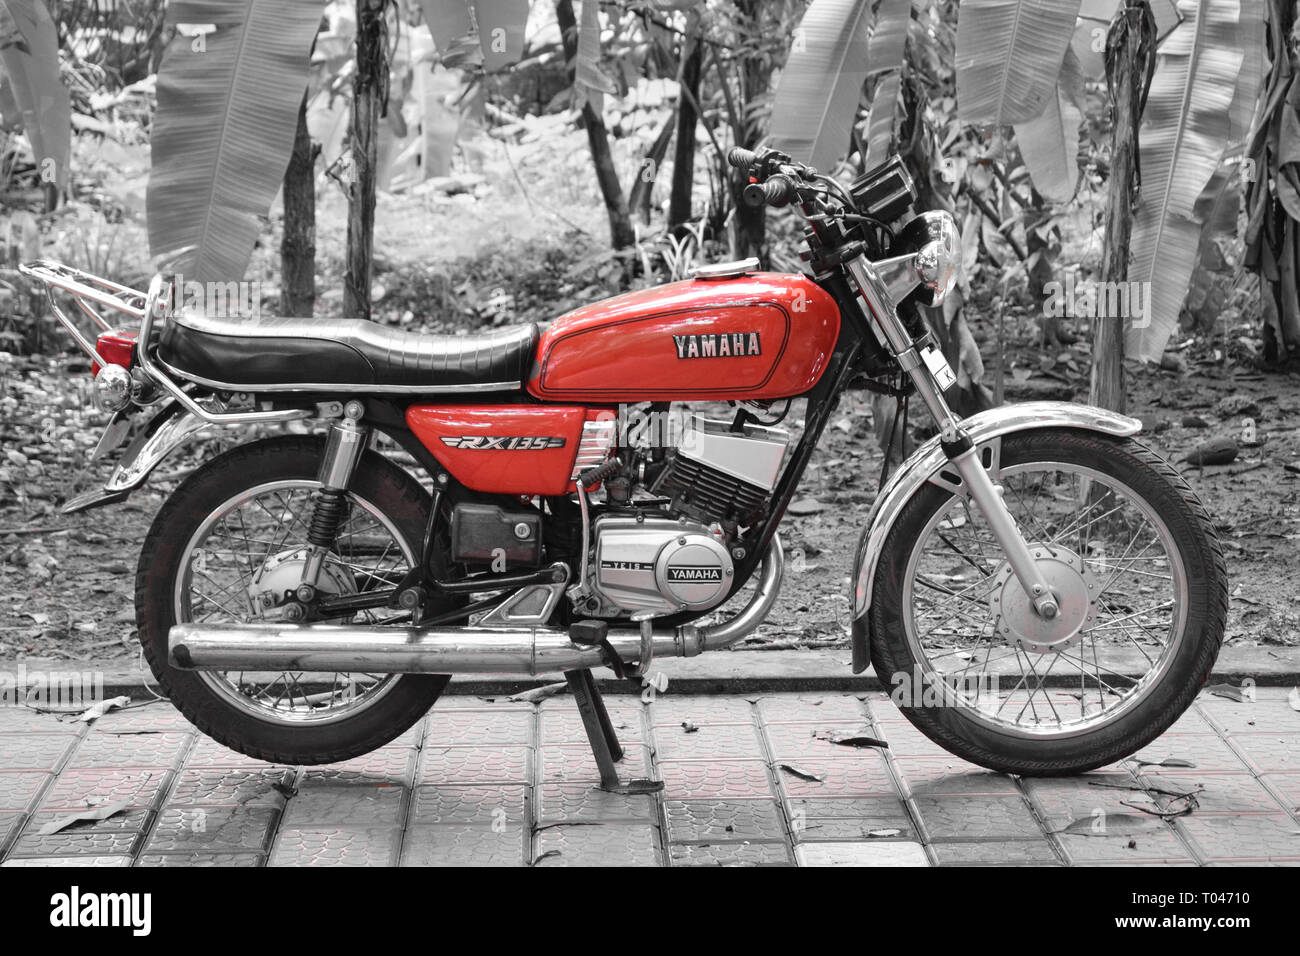 Yamaha RX135 captured using a Nikon D3300 with 18-55mm lens. Thought some selective color edit would look good on this picture. - Stock Image